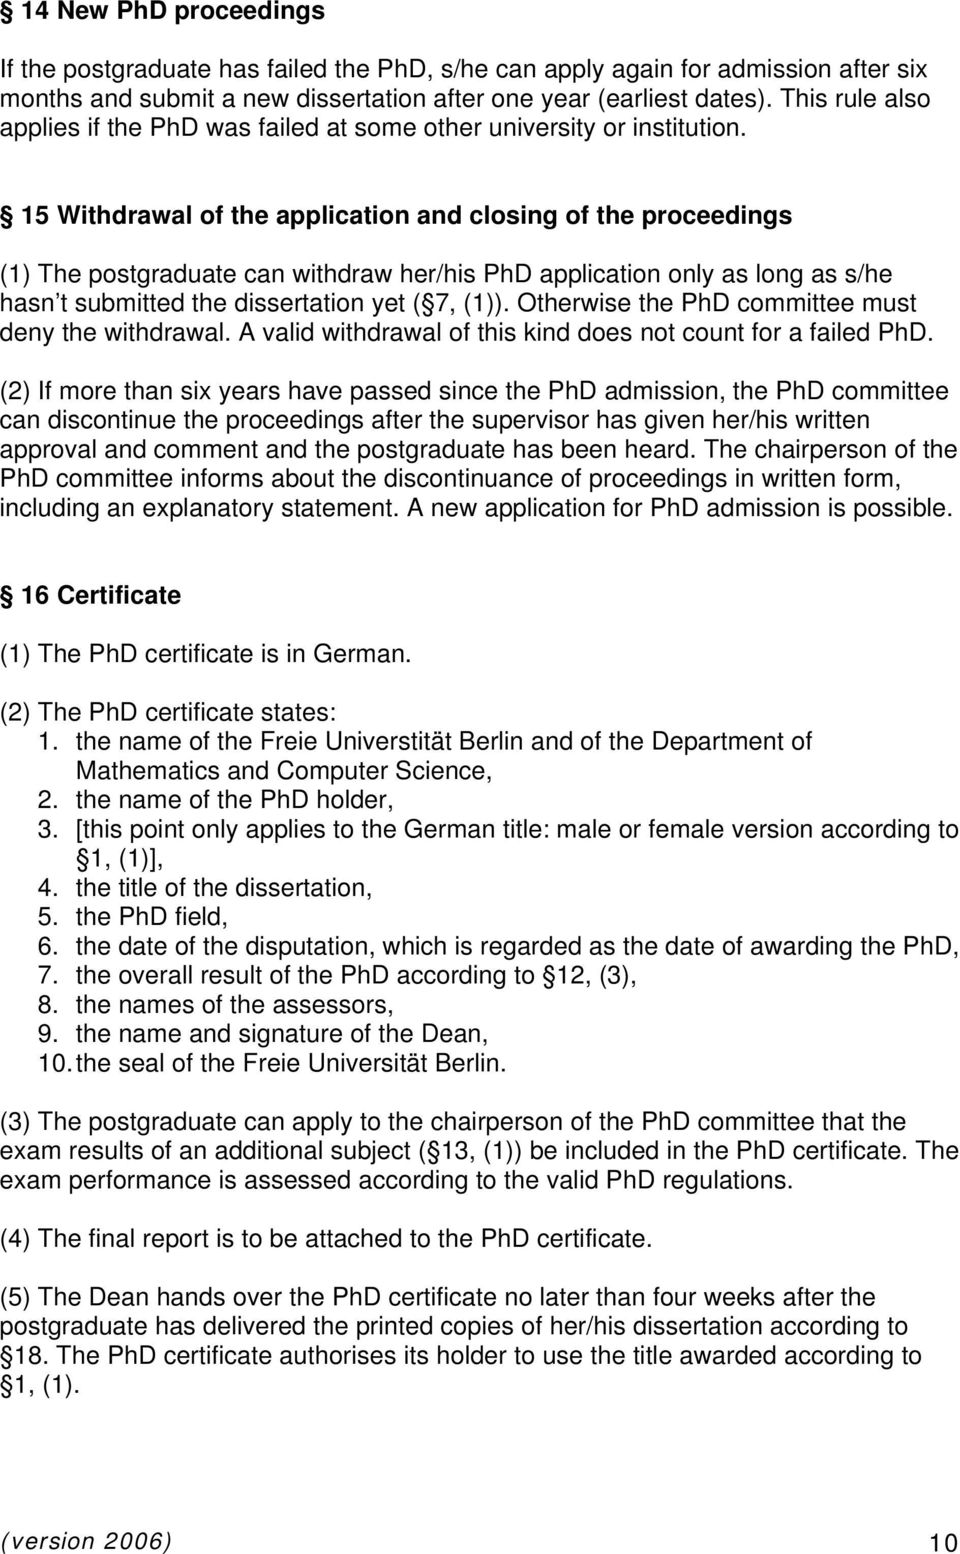 15 Withdrawal of the application and closing of the proceedings (1) The postgraduate can withdraw her/his PhD application only as long as s/he hasn t submitted the dissertation yet ( 7, (1)).